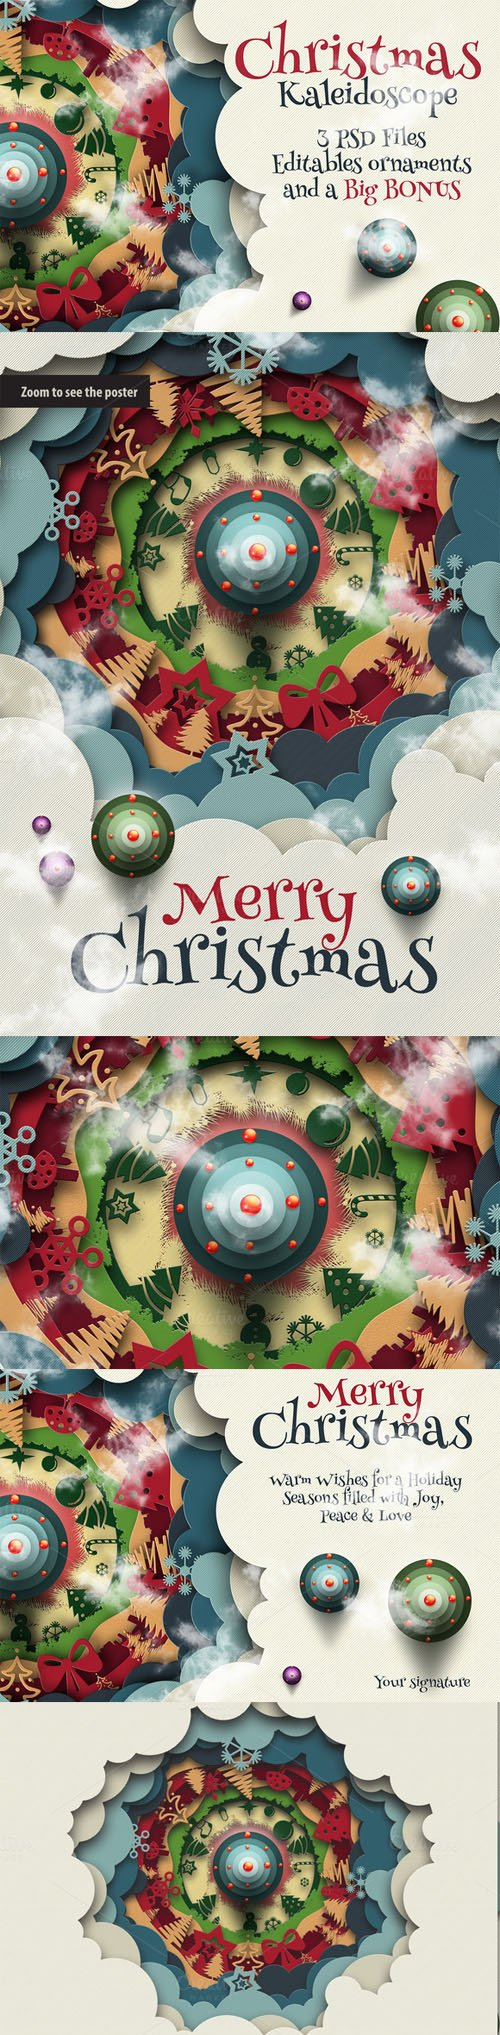 Christmas Kaleidoscope Animated - CM 119298